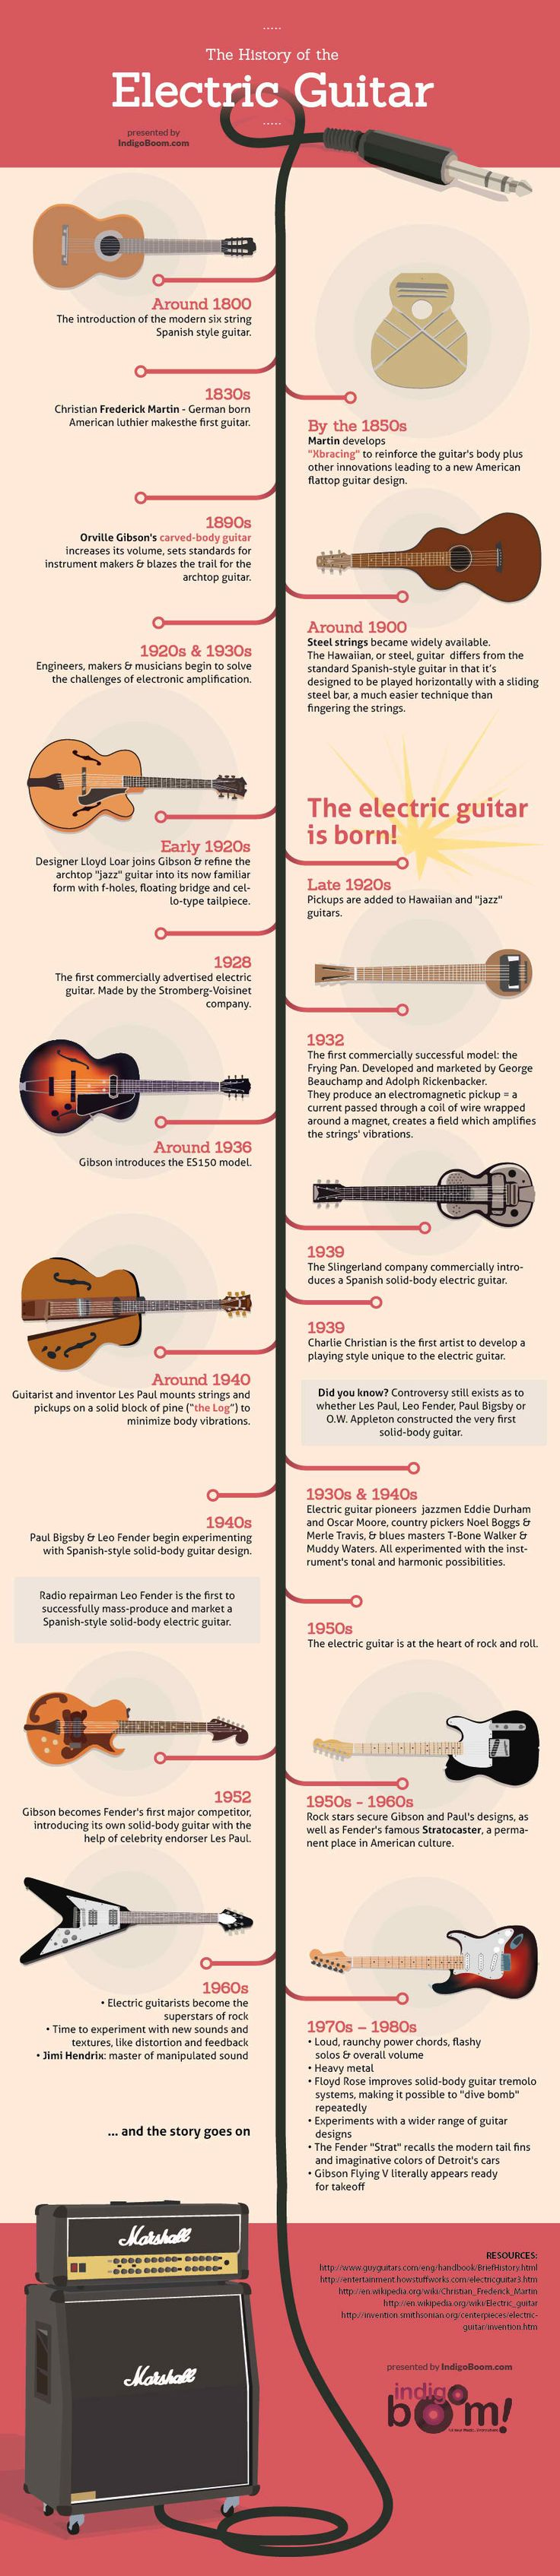 The History of The Electric Guitar